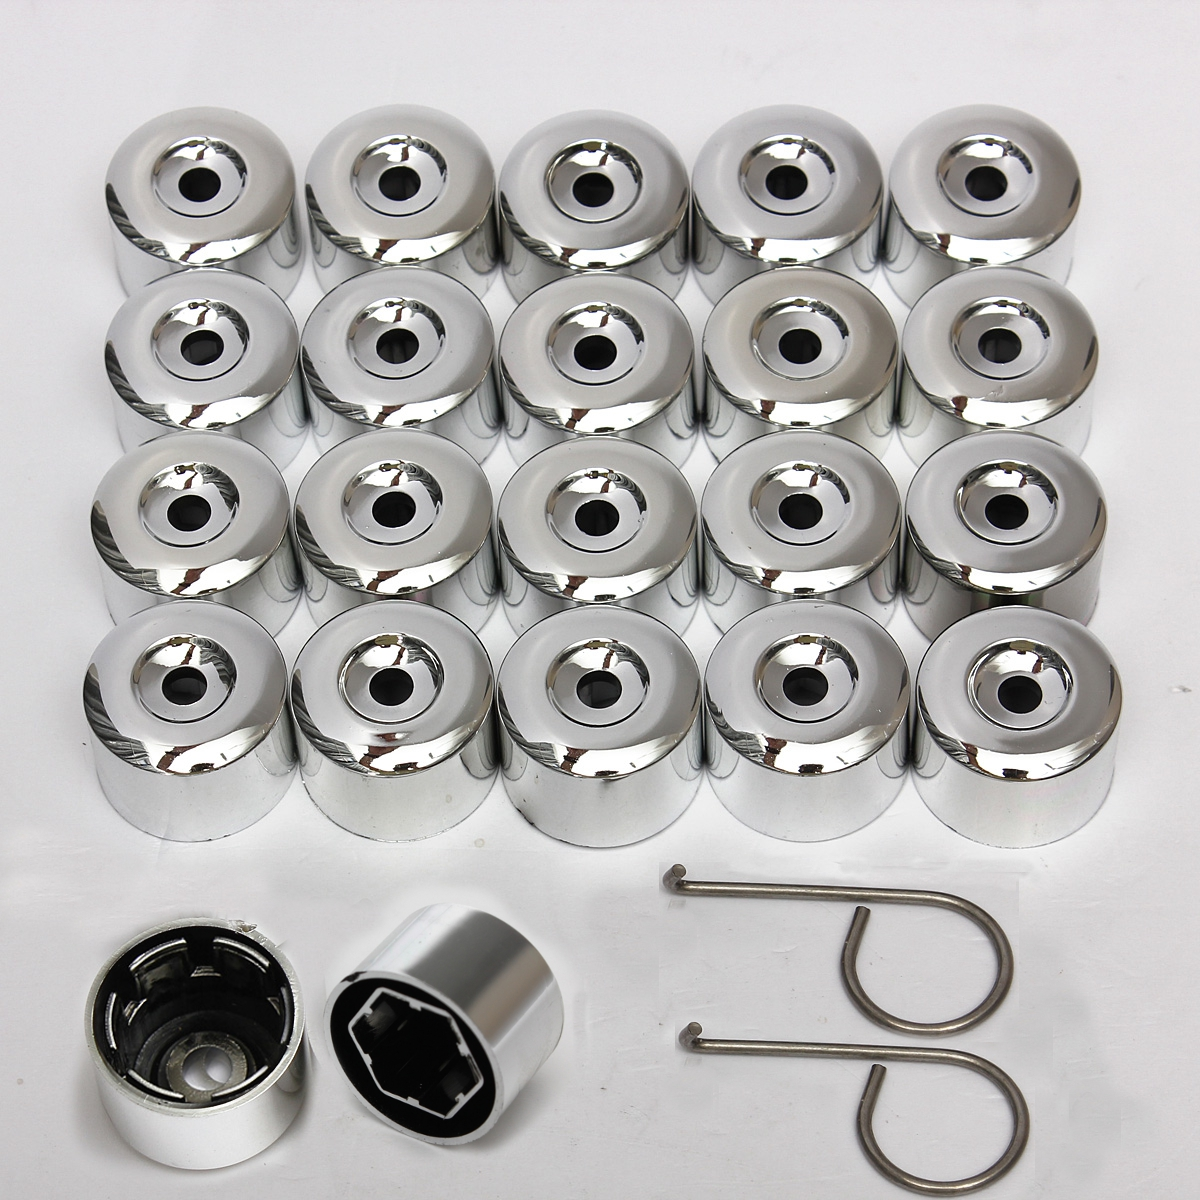 Only To 17mm carwheelnut Chrome Alloy Wheel Looking Nut Bolts Covers Caps For Vw Golf Passat Polo